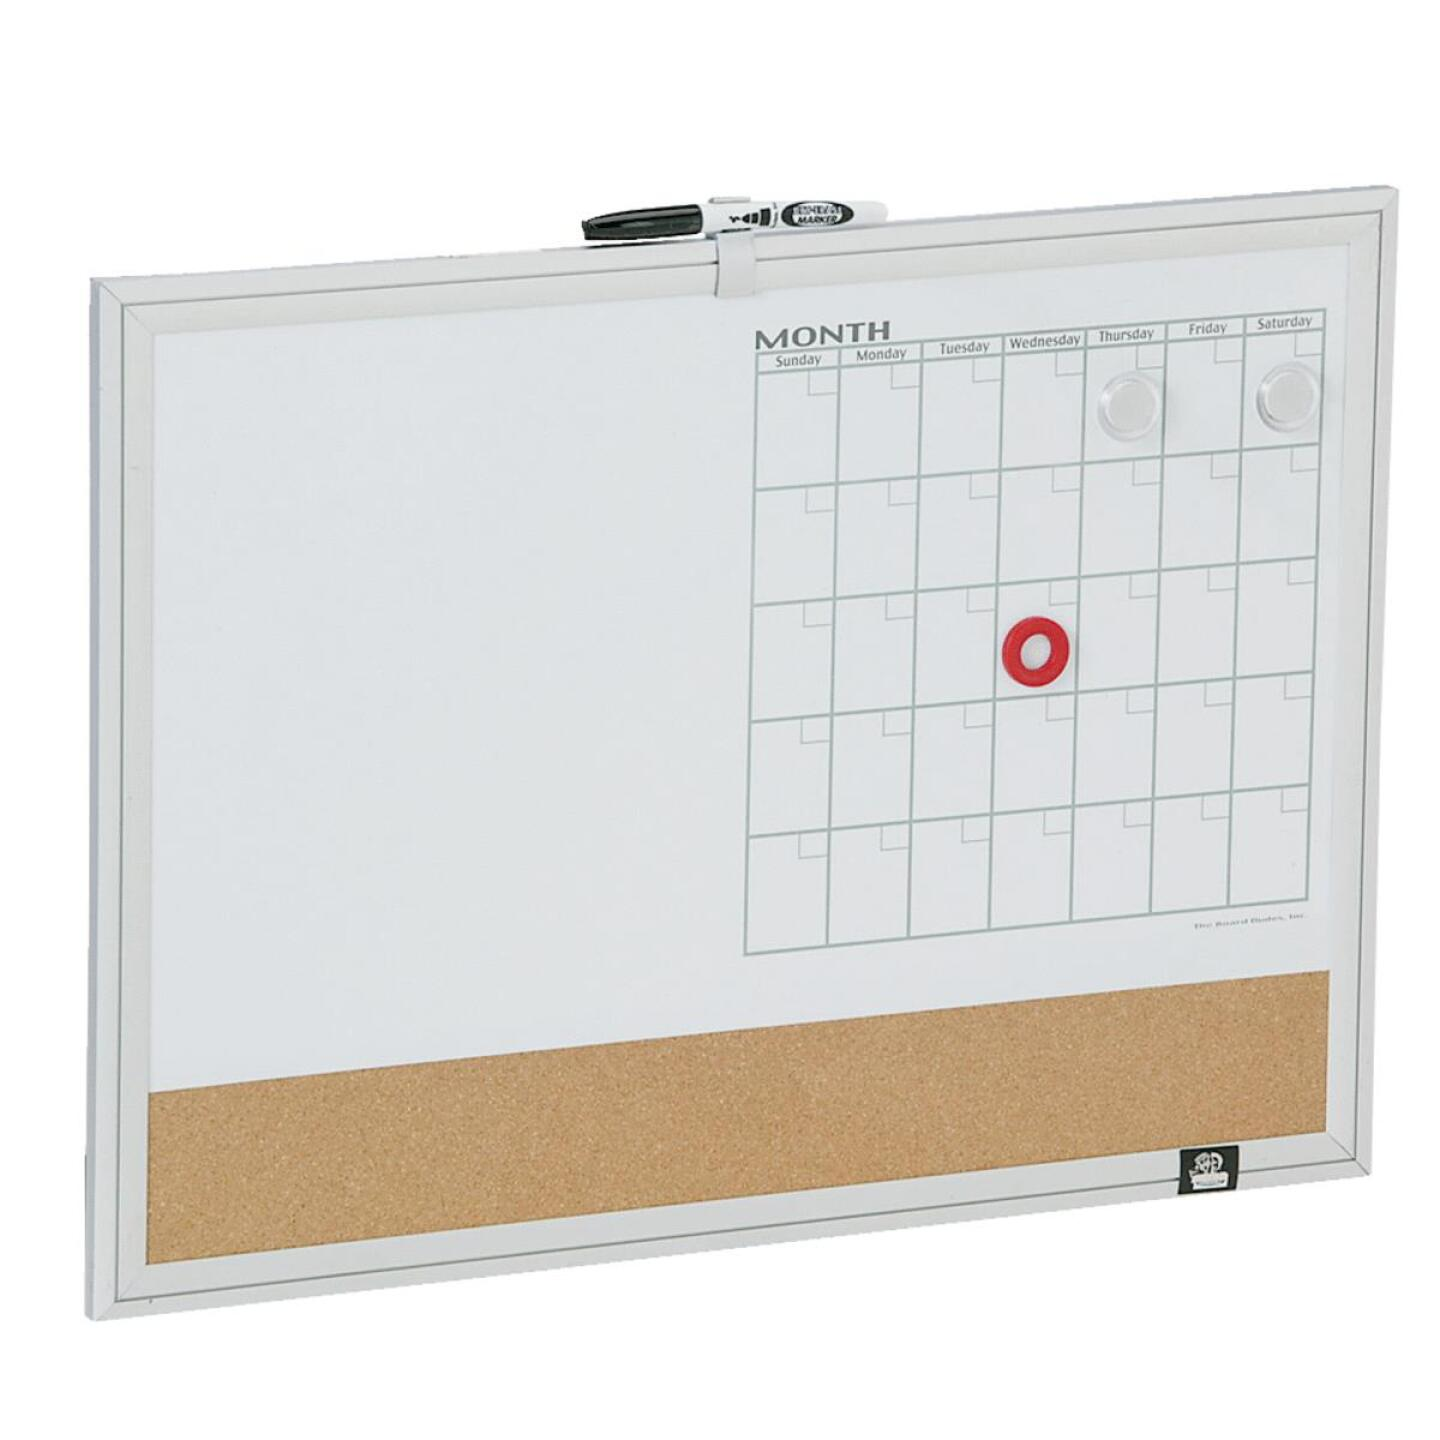 The Board Dudes 17 In. x 23 In. 3-in-1 Magnetic Dry-Erase Board Image 1